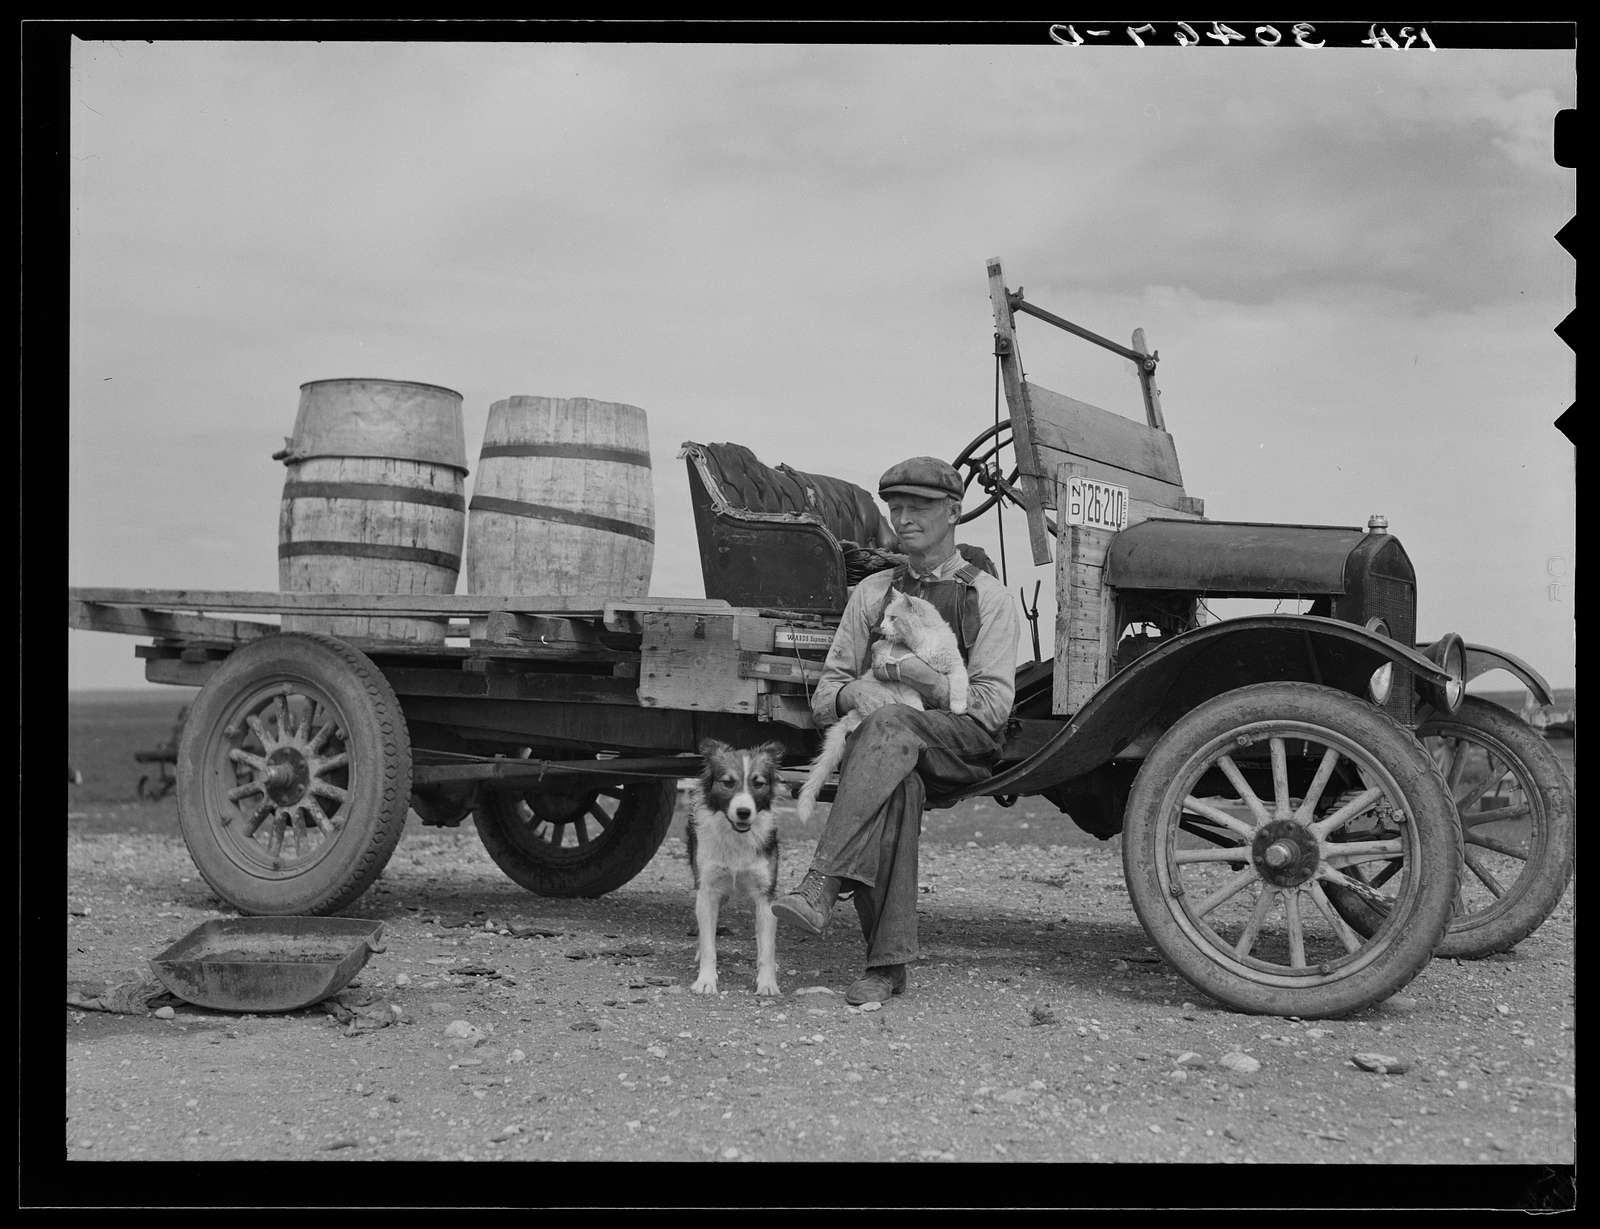 Herman Gerling. Barrels on truck are for hauling water. Near Wheelock, North Dakota